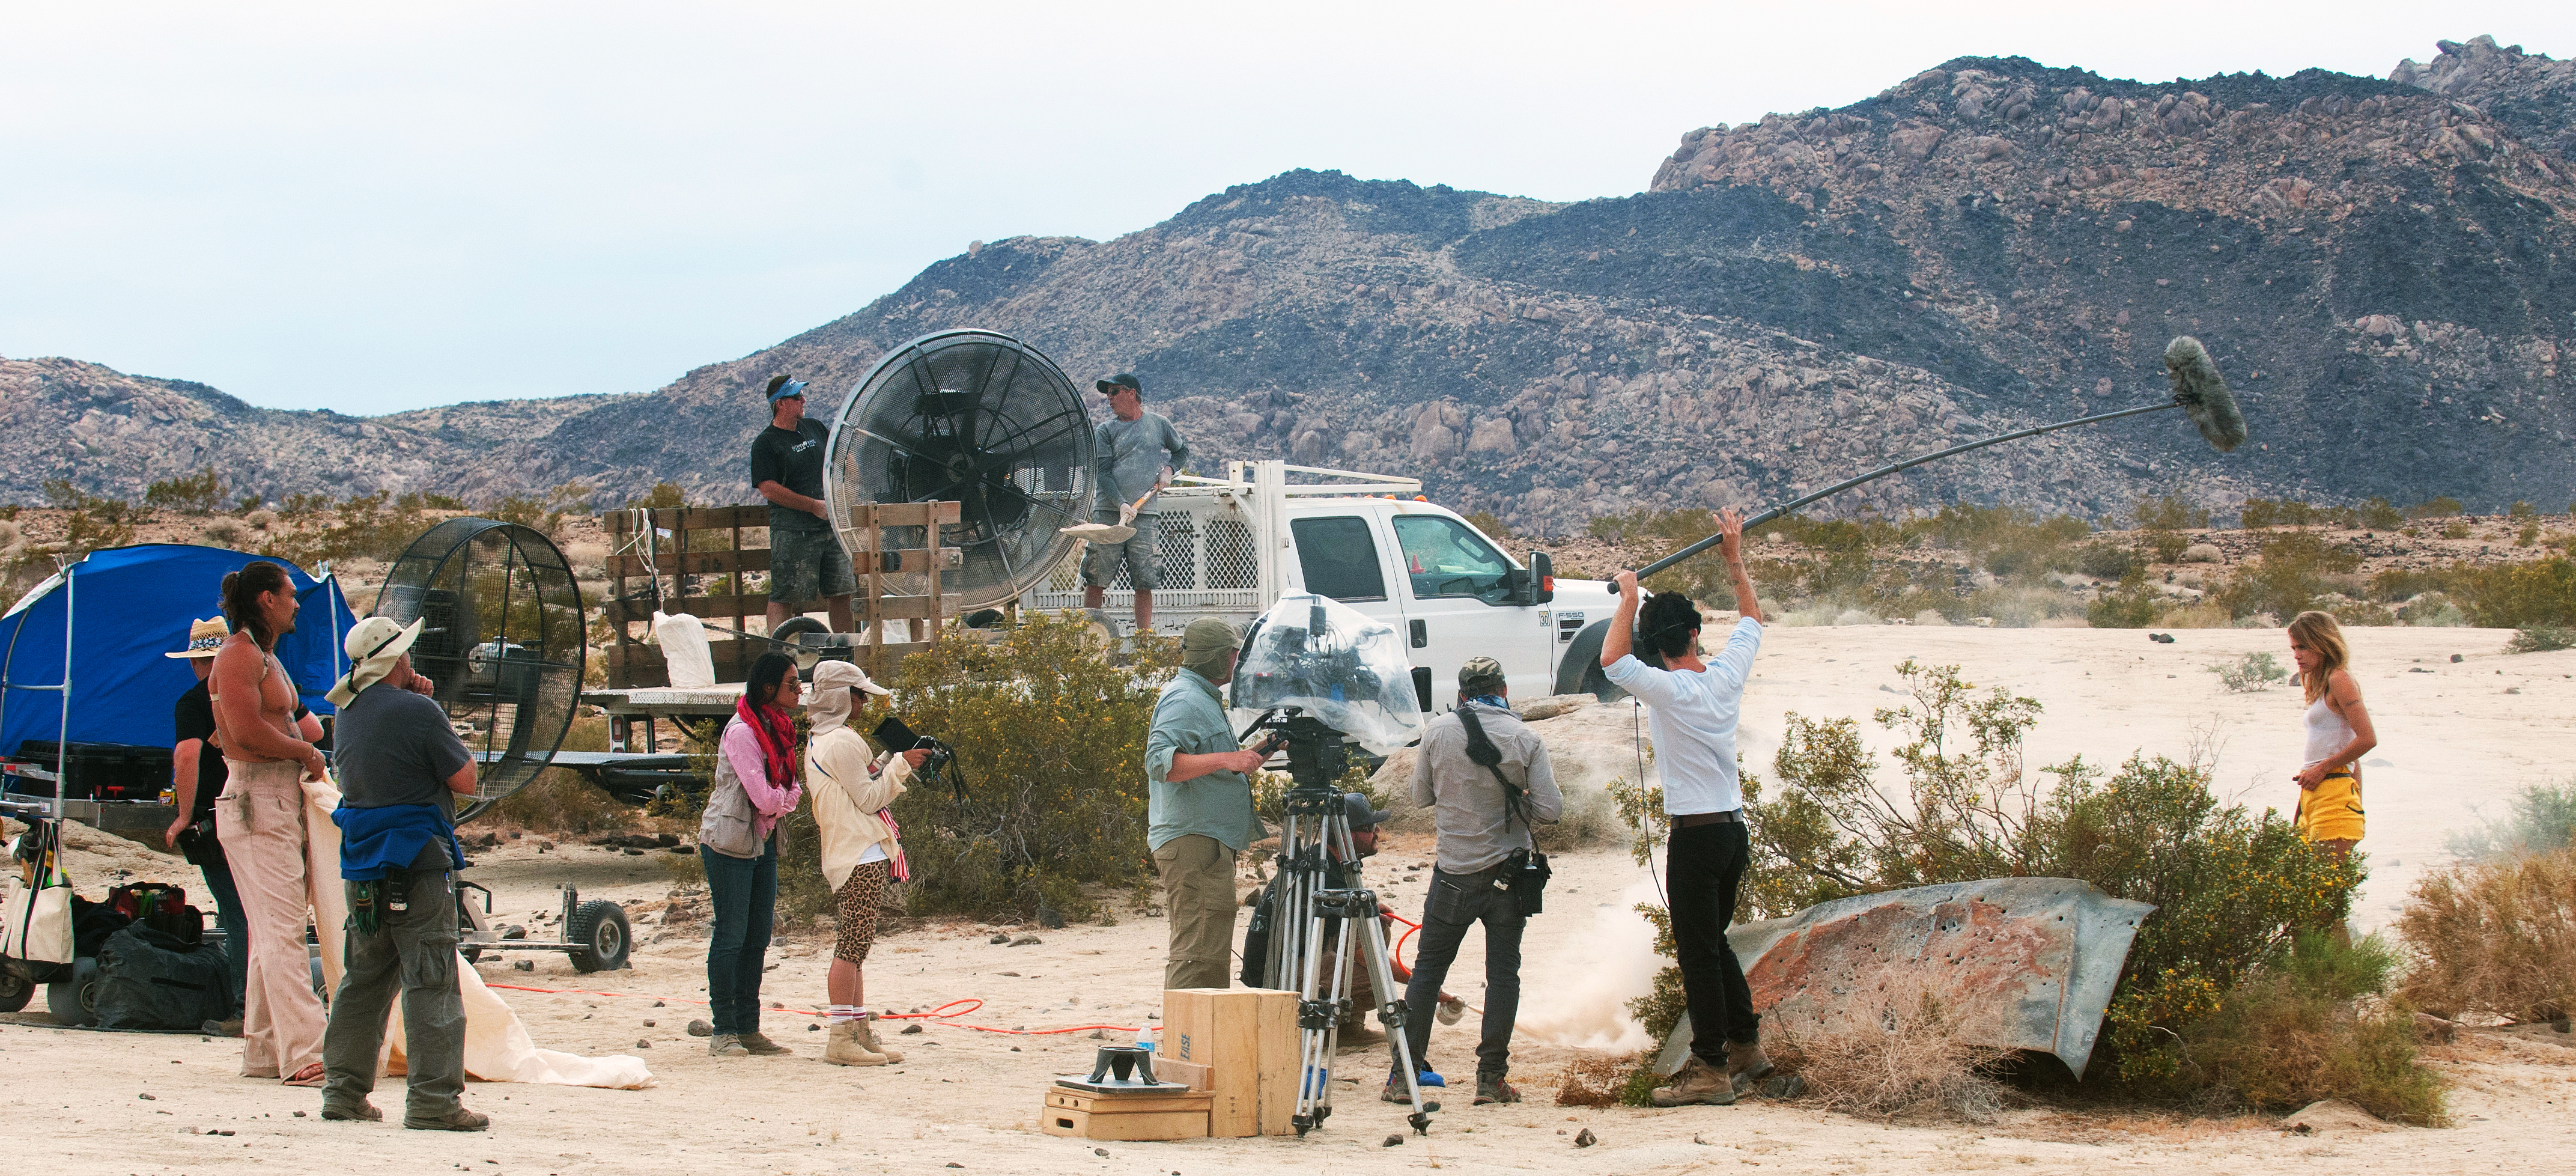 Waterhouse, Momoa, Amirpour (wearing cap and holding director's monitor) and crew capture a scene on location. Ritter fans are ready to provide clouds of dust.